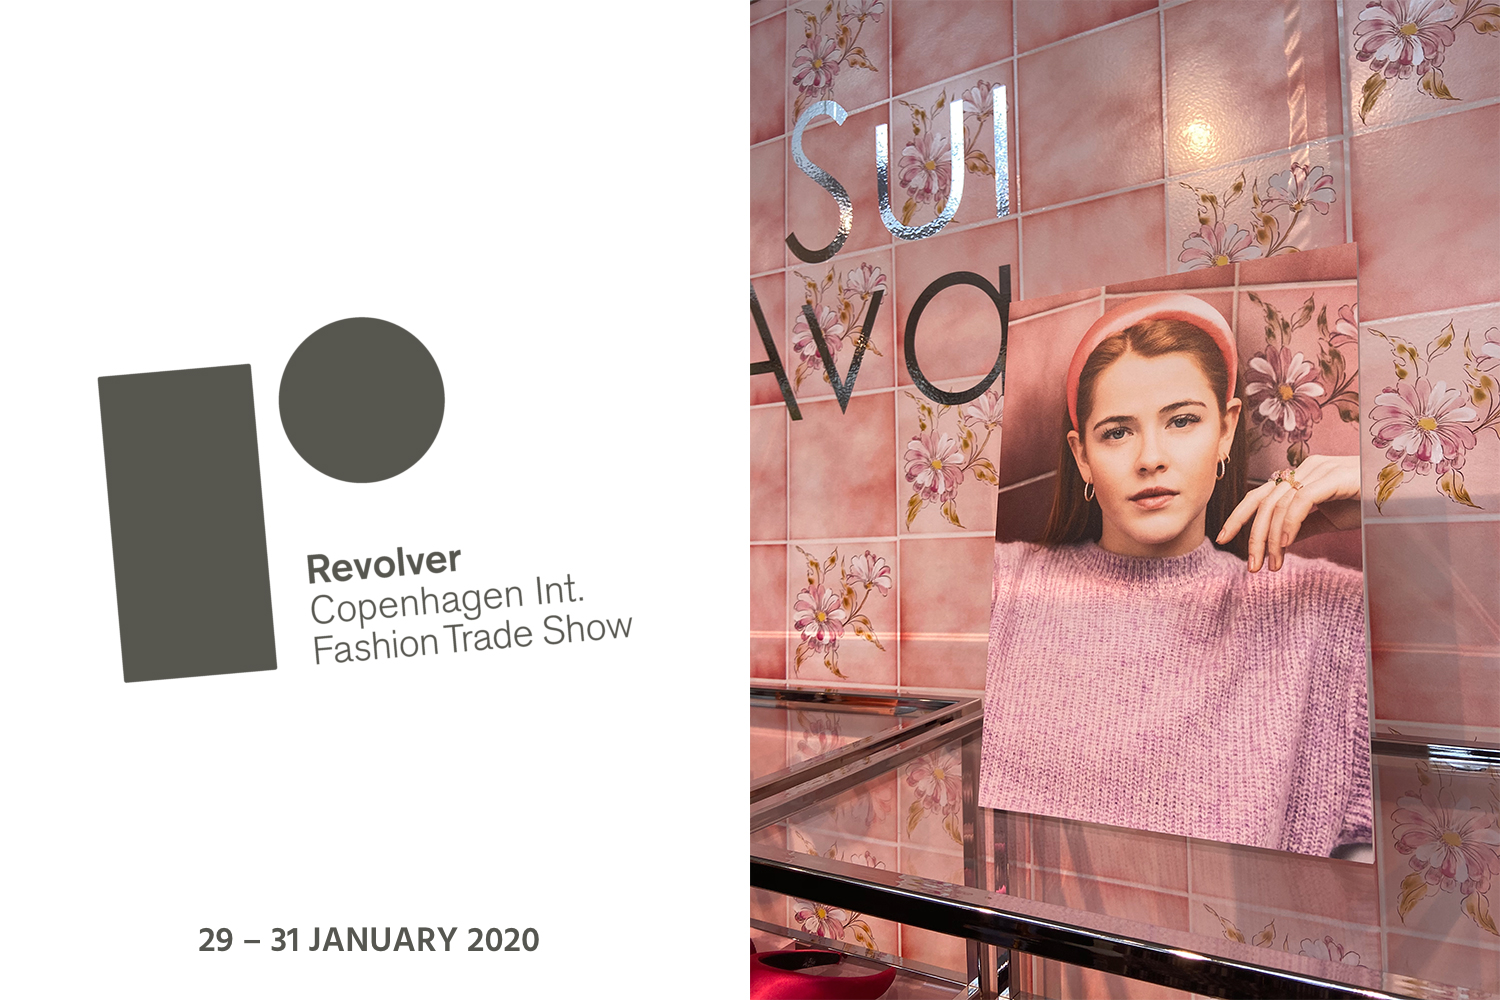 Sui Ava Revolver Fashion Trade Show 2020